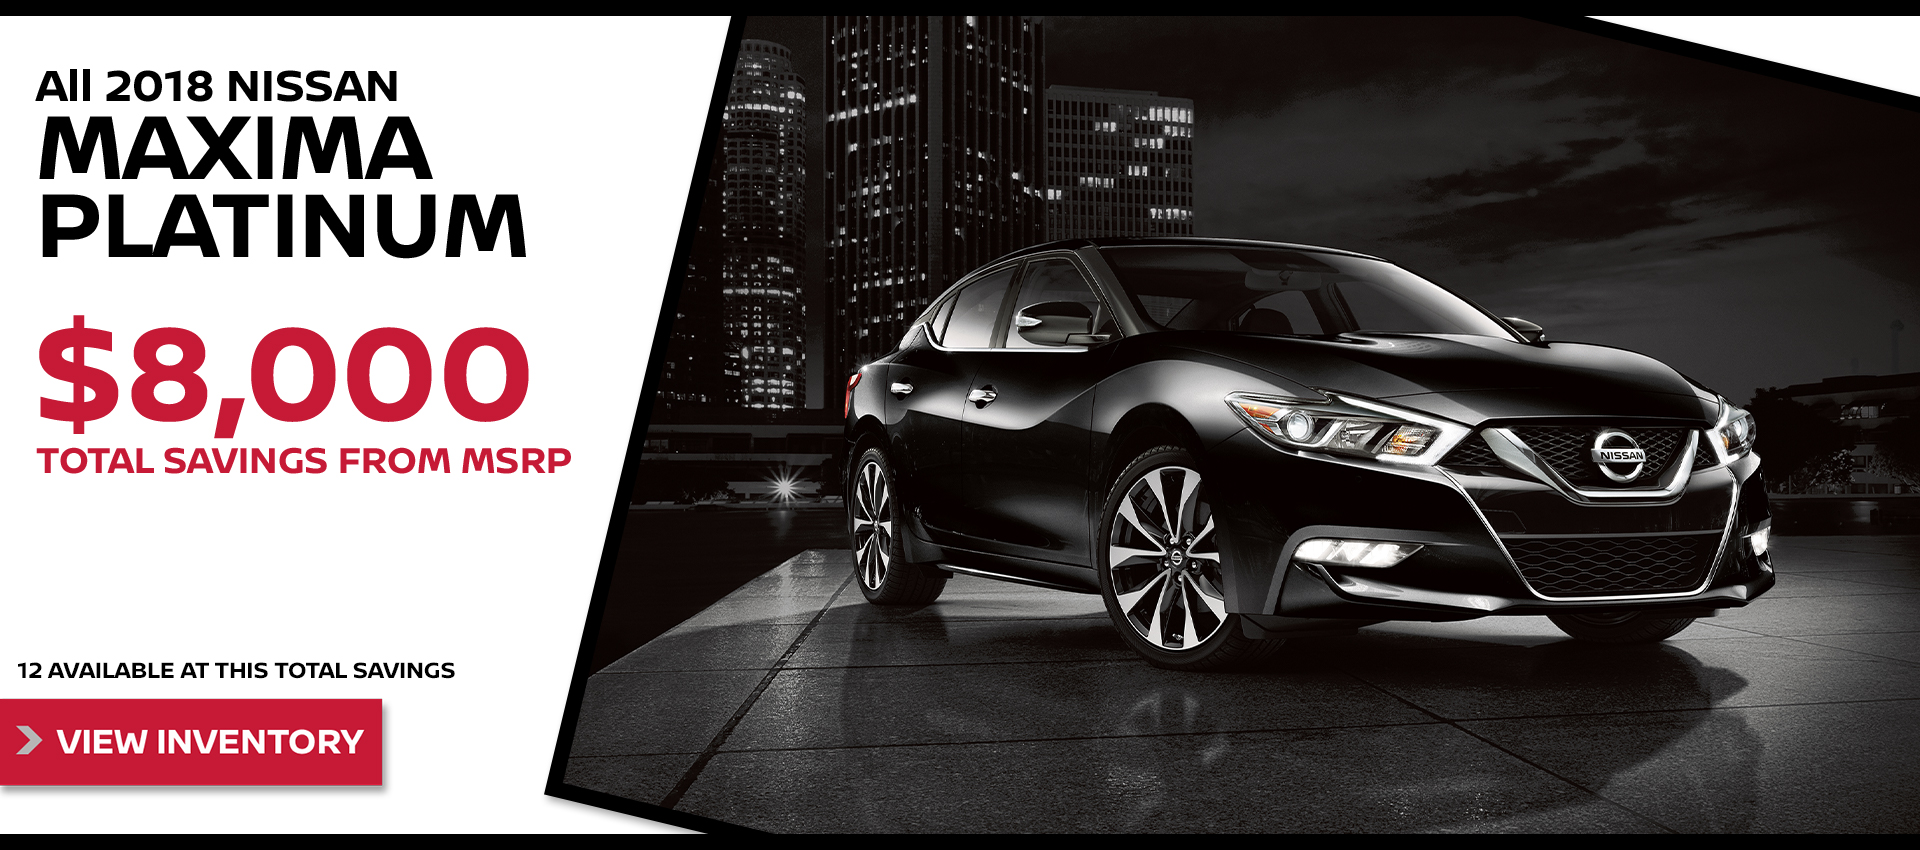 Mossy Nissan - Nissan Maxima $8,000 Off MSRP HP